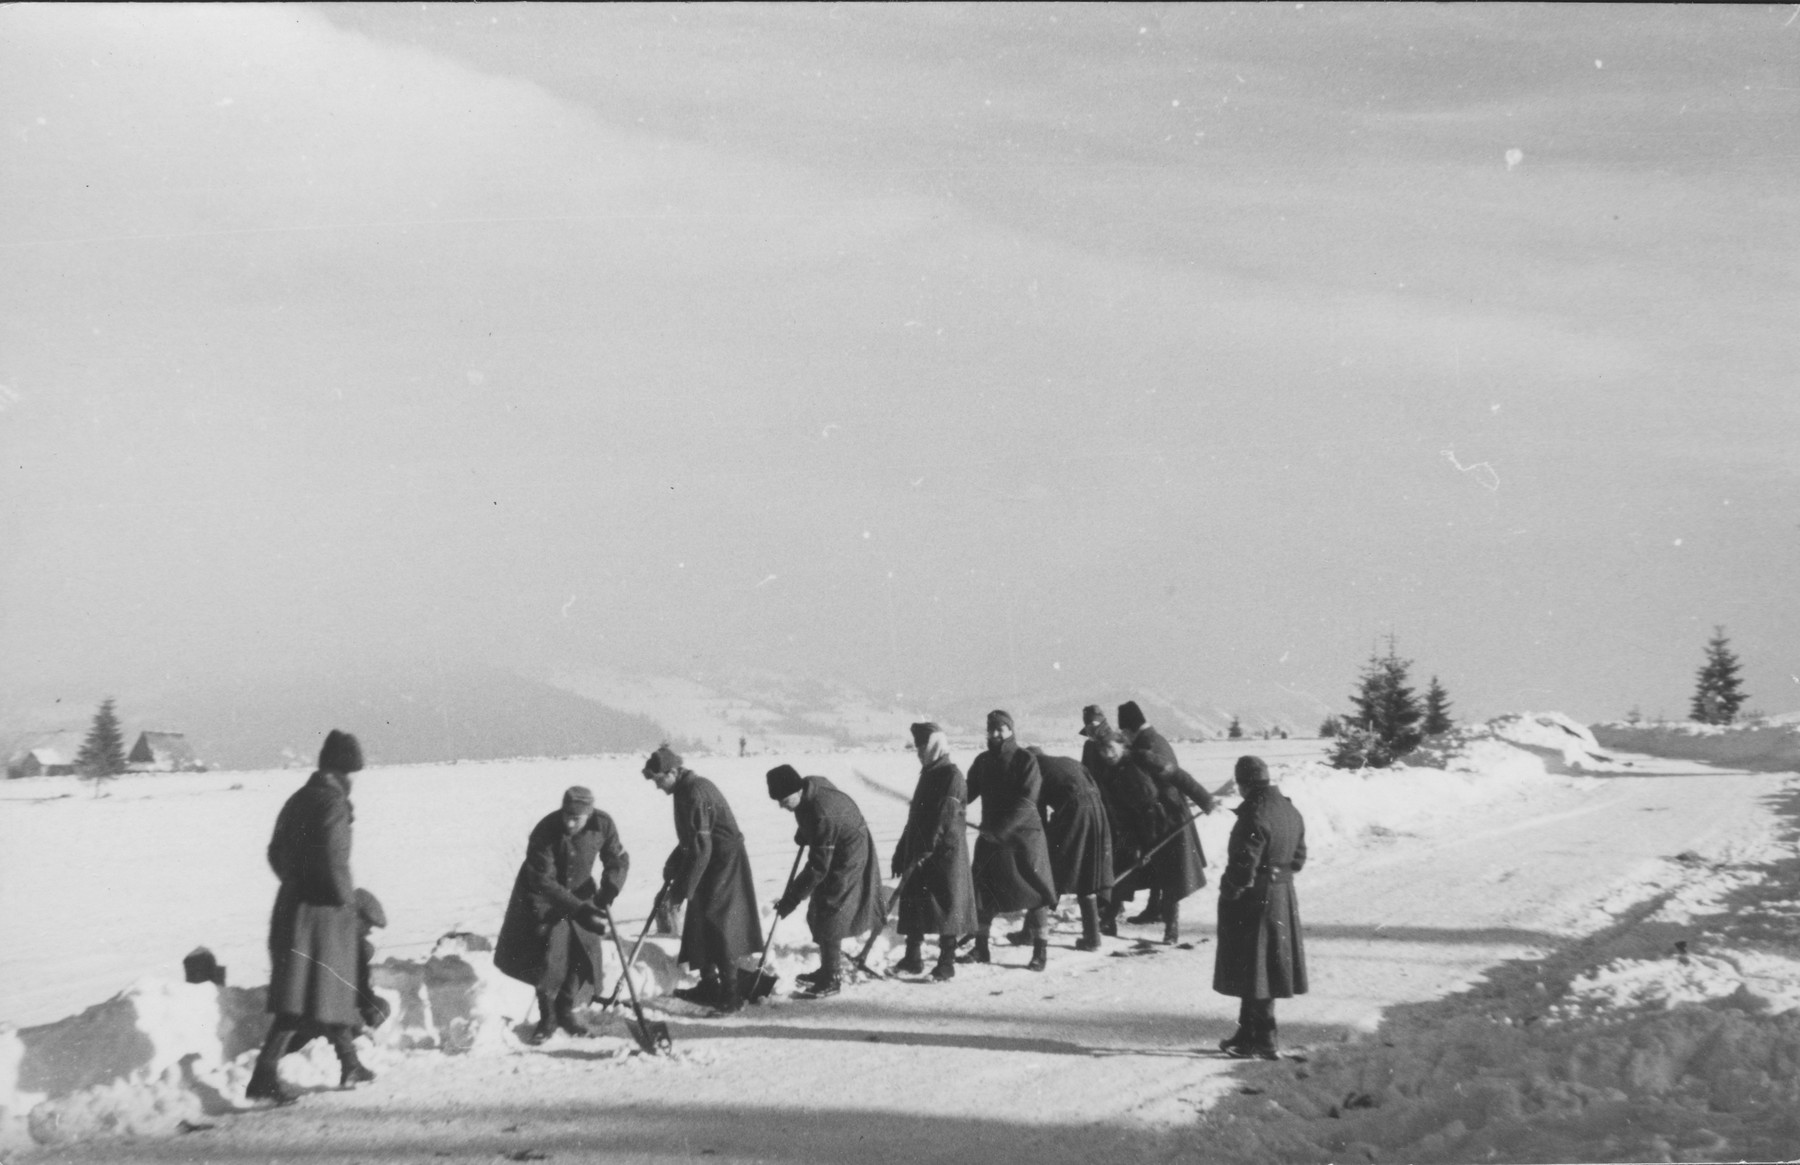 Jewish conscripts in Company 108/57 of the Hungarian Labor Service at forced labor clearing snow from a road.